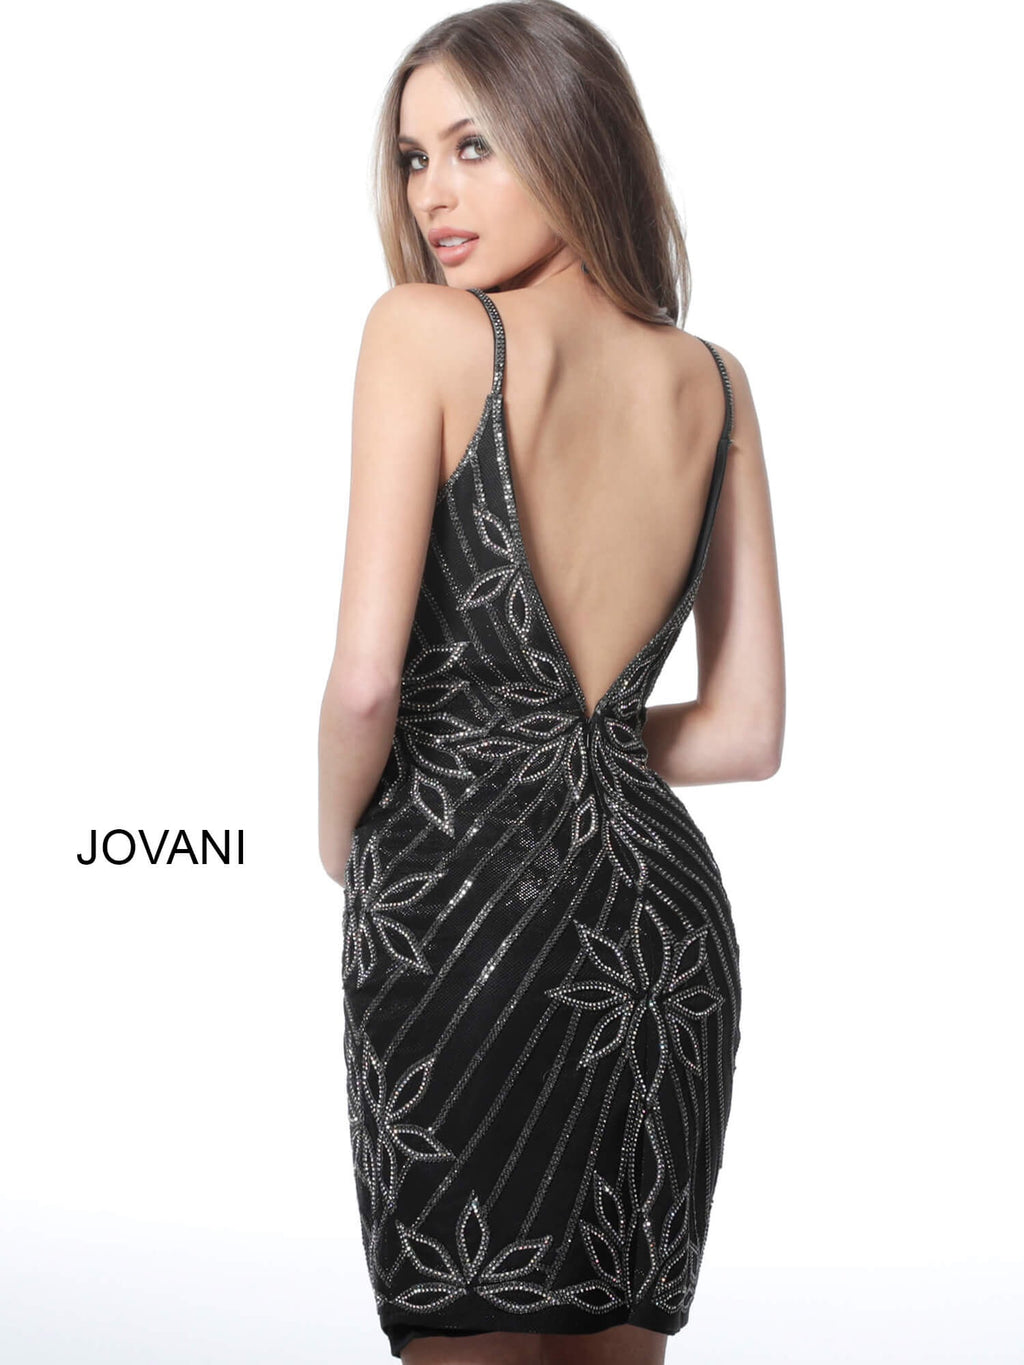 JOVANI 4391 Embellished Cocktail Dress